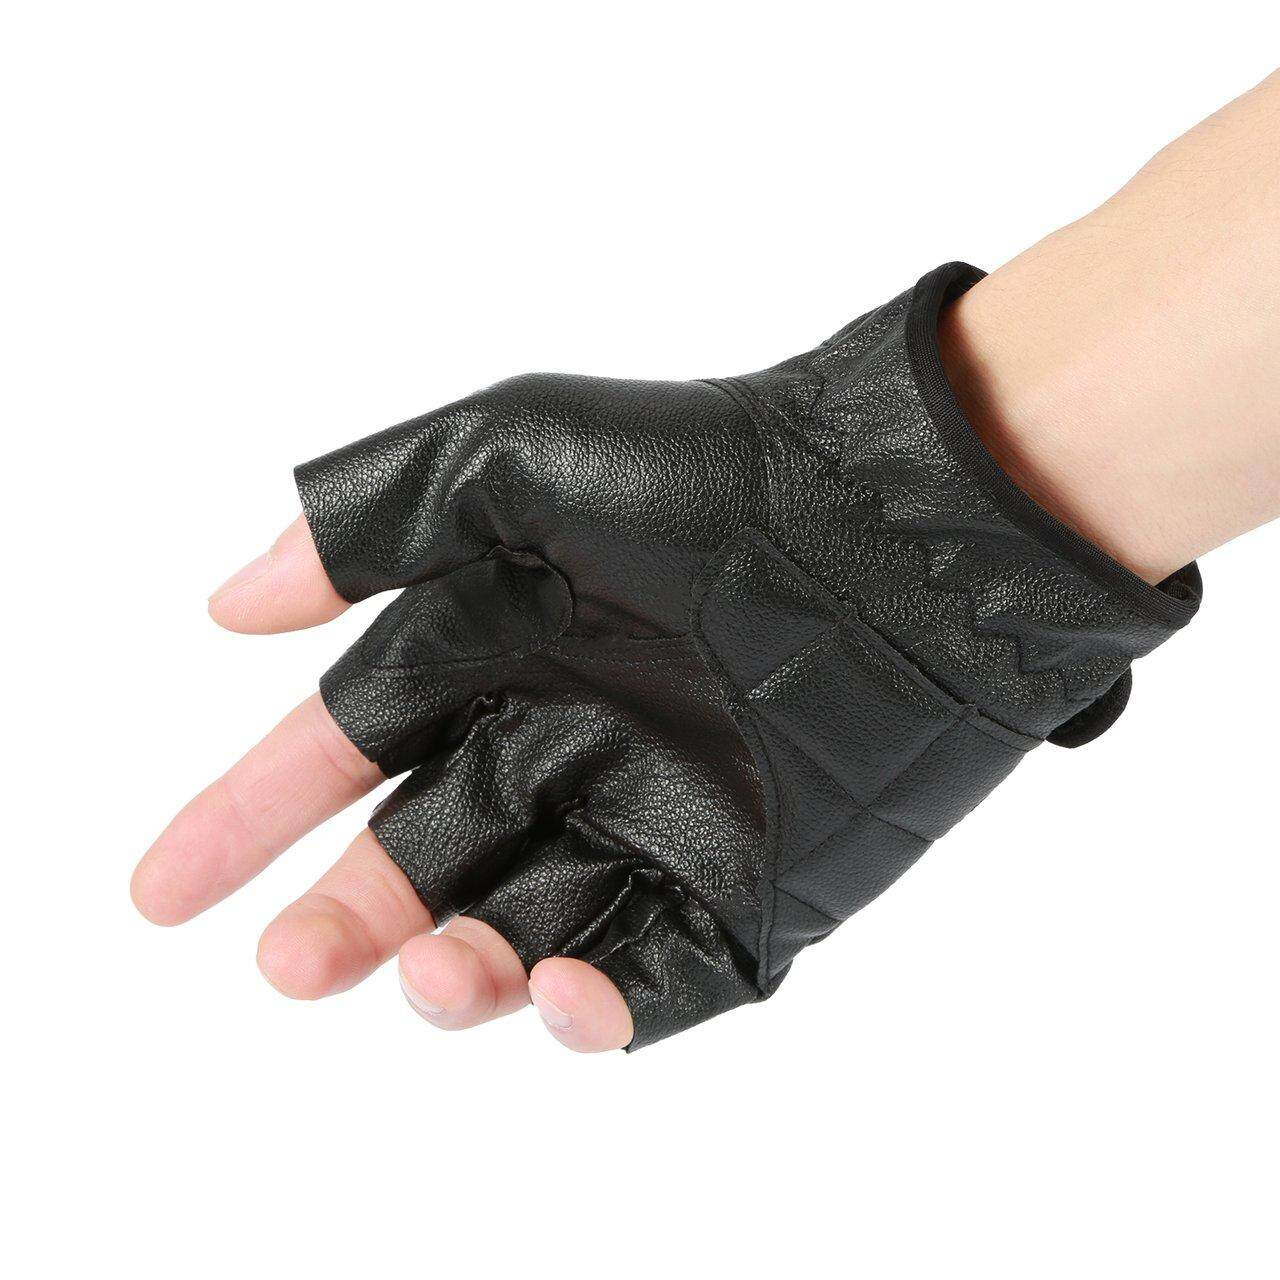 MakeAC Half Finger Gloves PU Leather Men Gloves For Tactical Military Exercise Training Sports Motorcycle Ridding